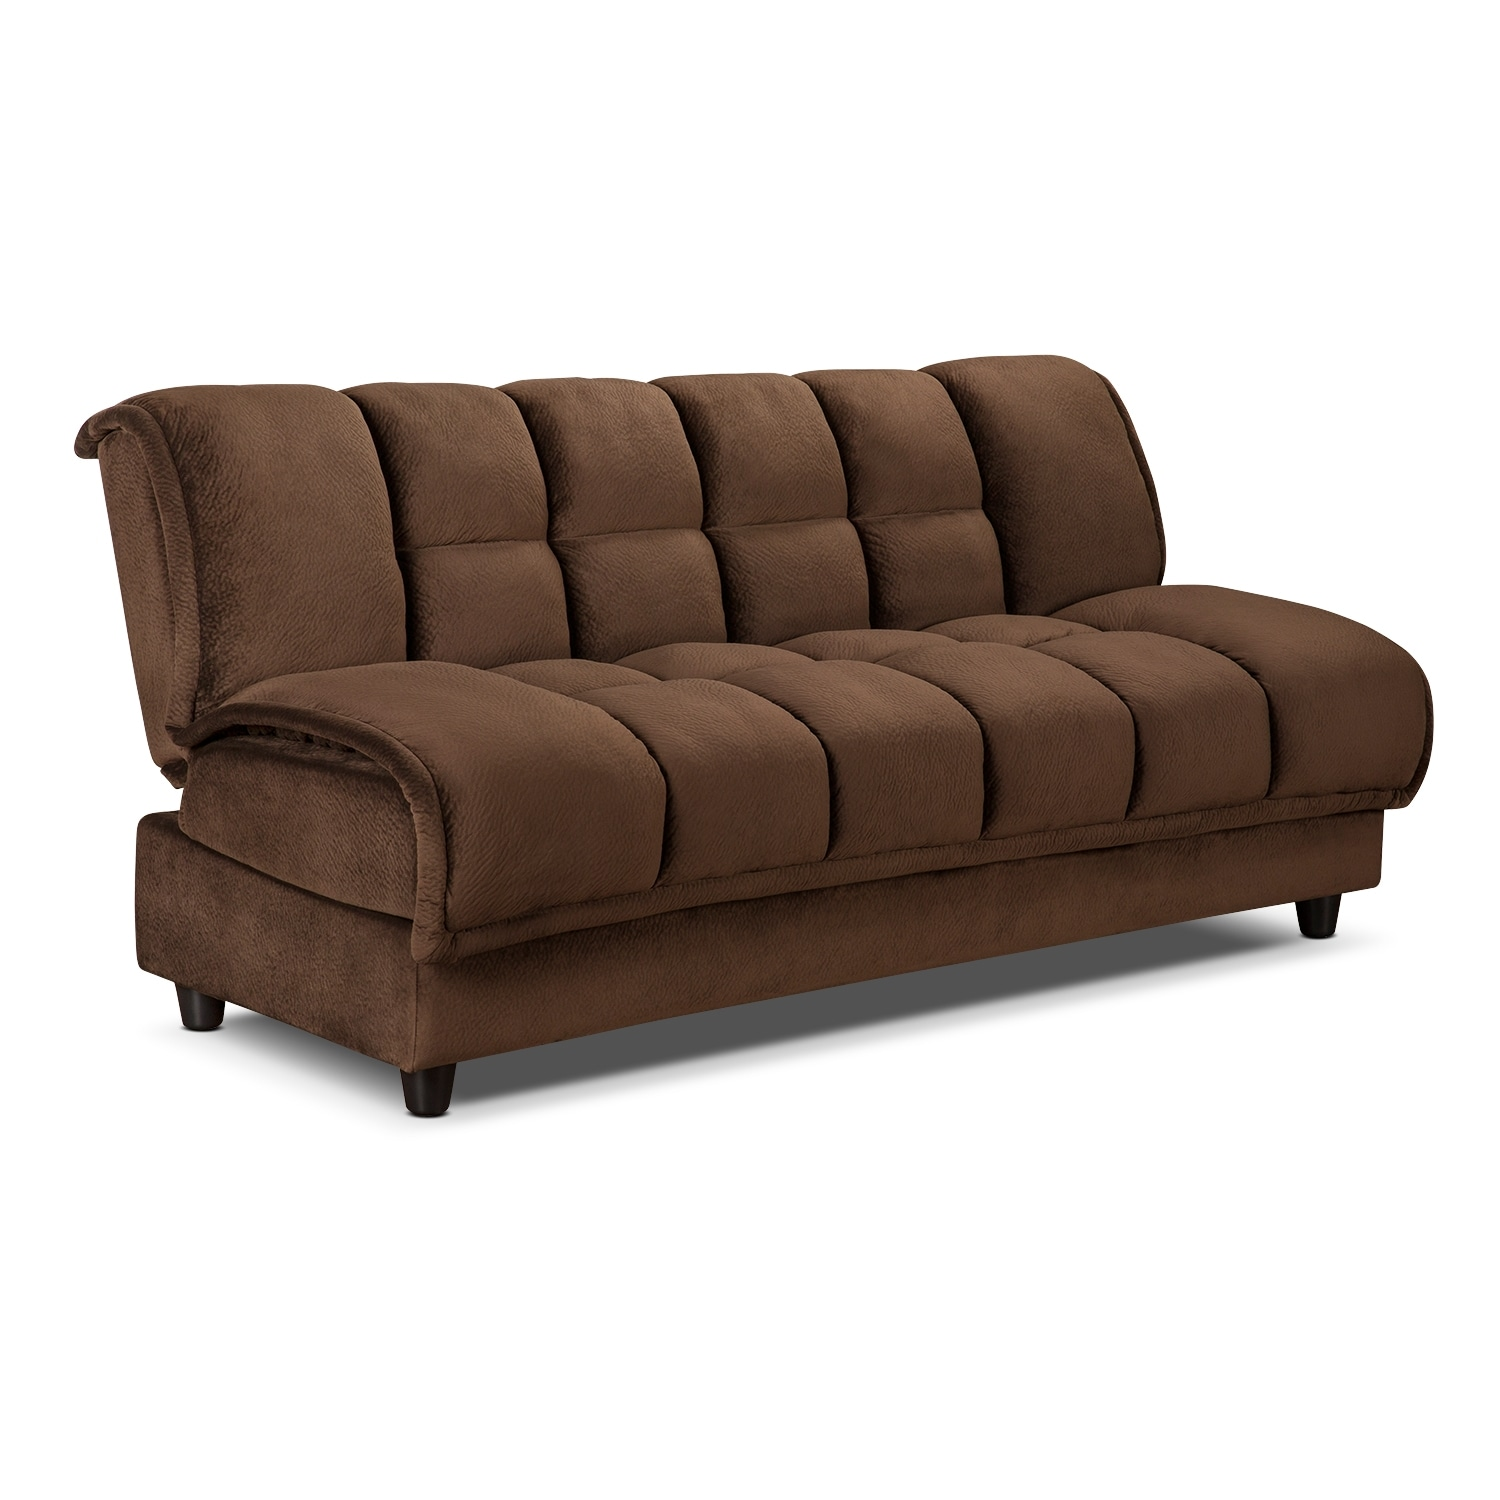 Darrow futon sofa bed with storage for Furniture and beds